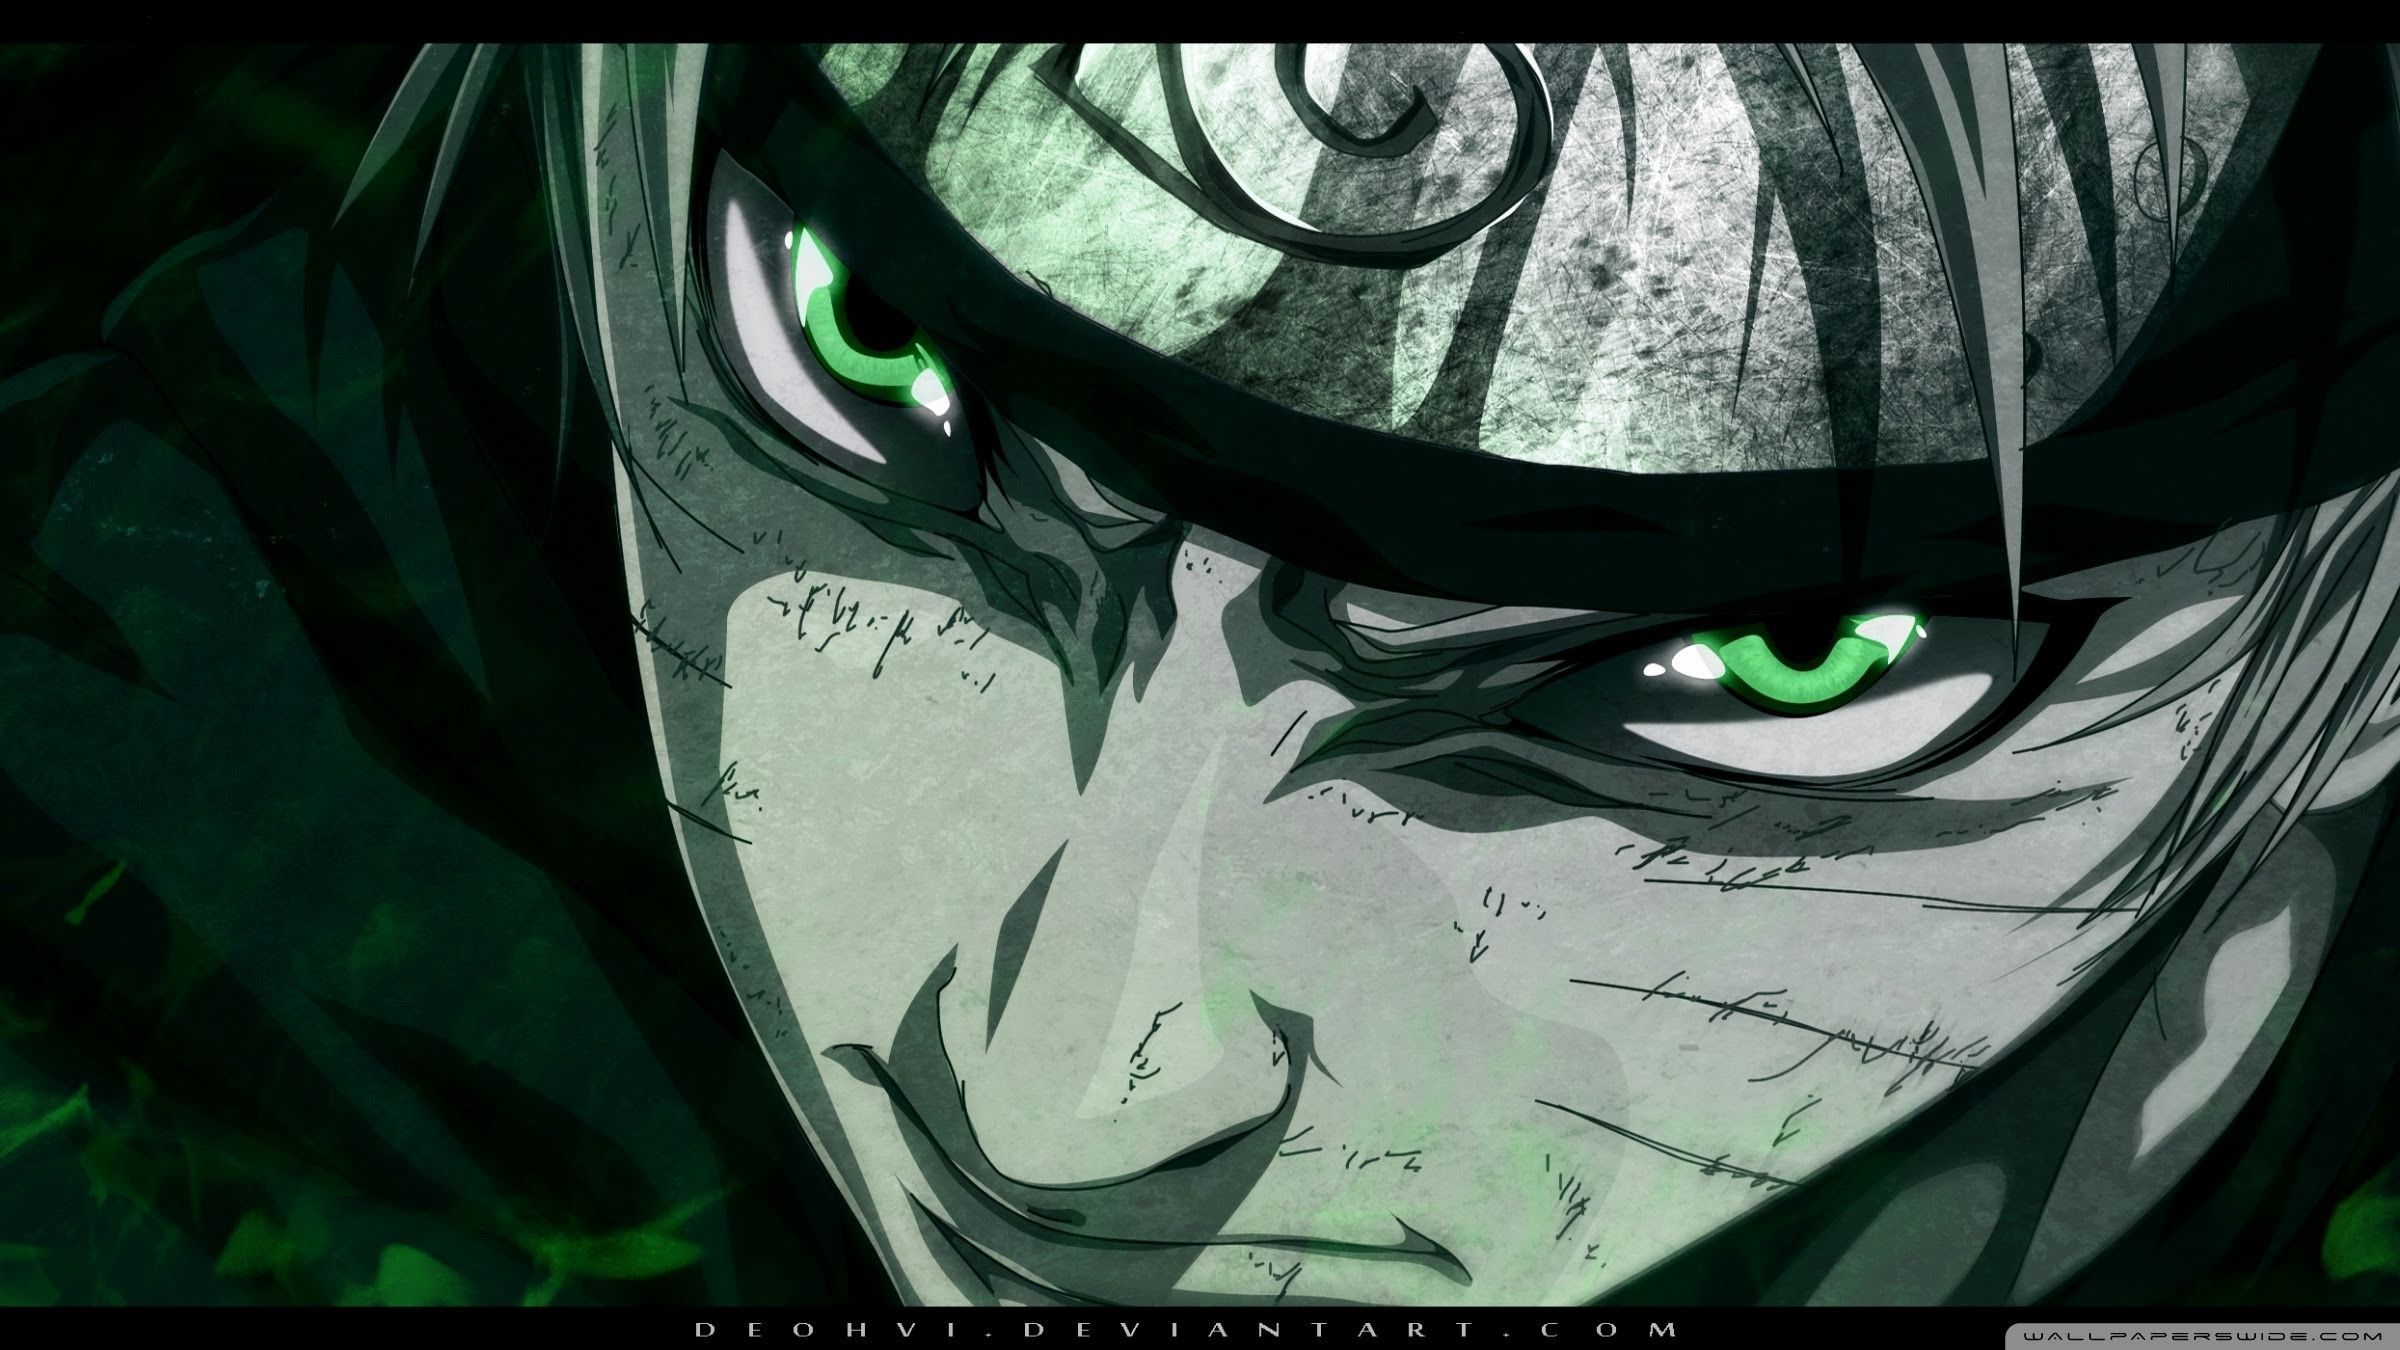 Pin By Sizechs On Naruto Uzumaki Best Naruto Wallpapers Naruto Wallpaper Anime Backgrounds Wallpapers